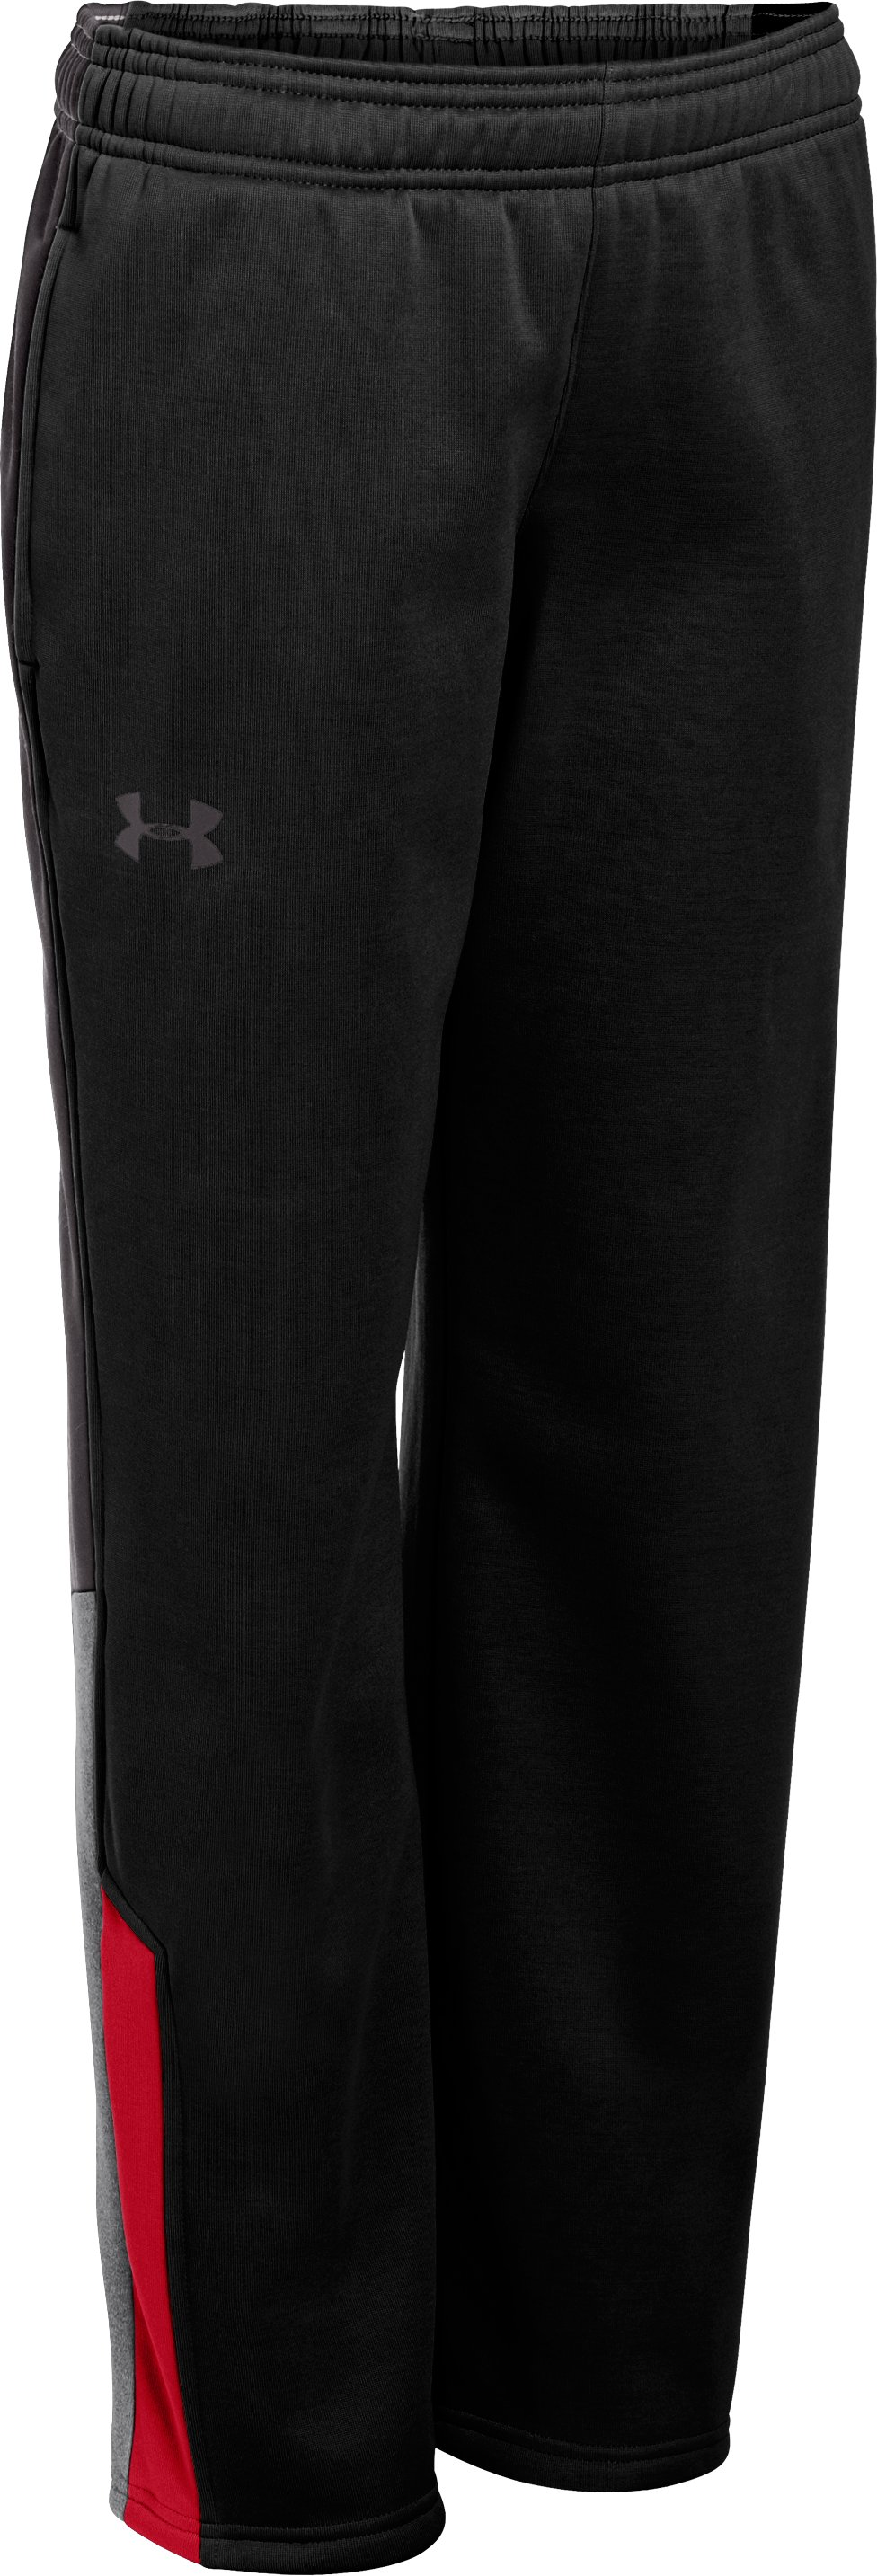 Boys' Armour® Fleece Storm Strokes Warm-Up Pants 2.0, Black